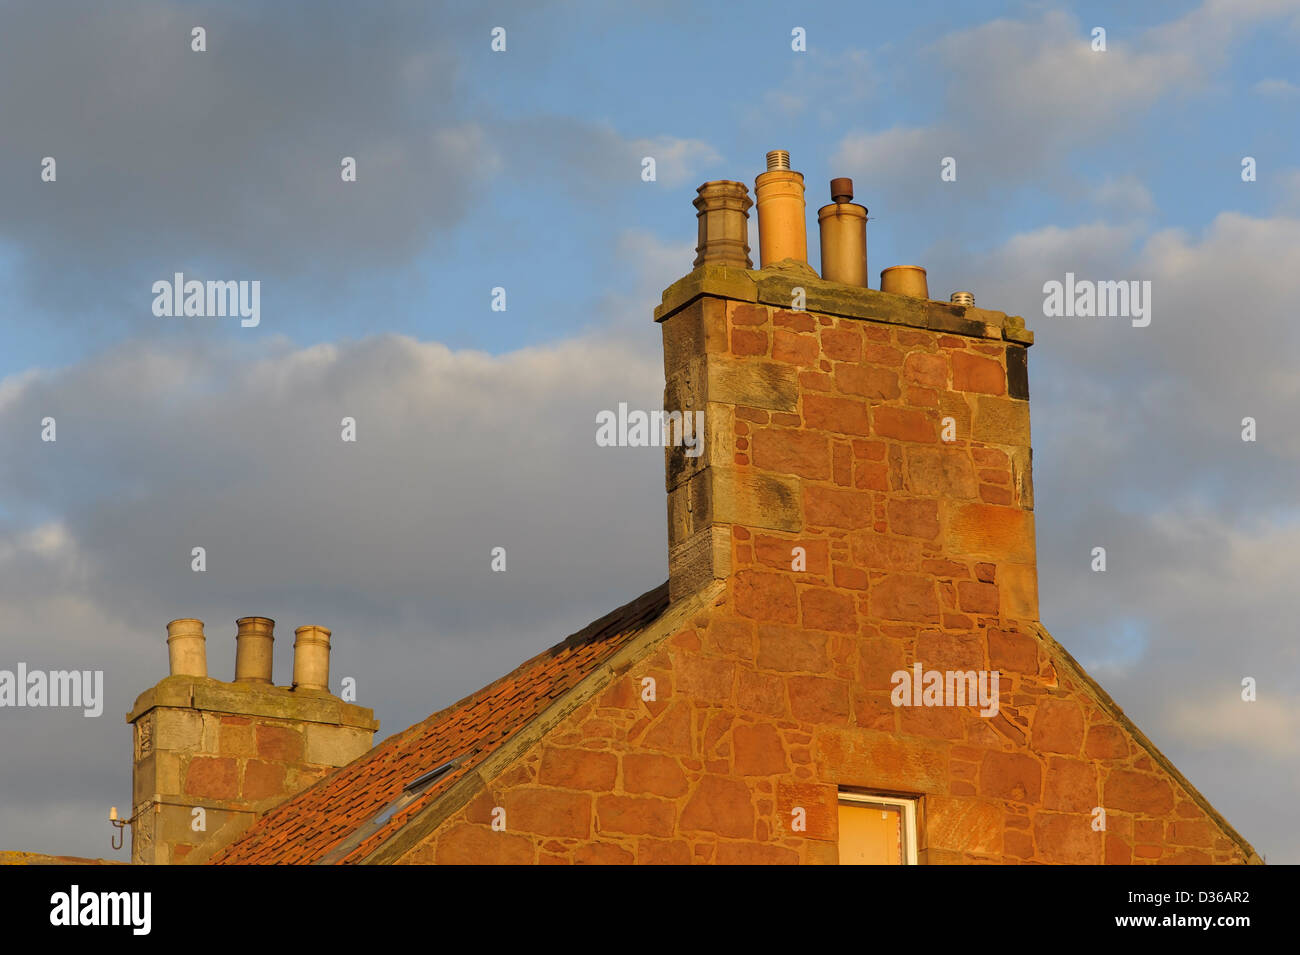 Large pottery chimney pots on a stone chimney stack of an old house in Scotland. - Stock Image